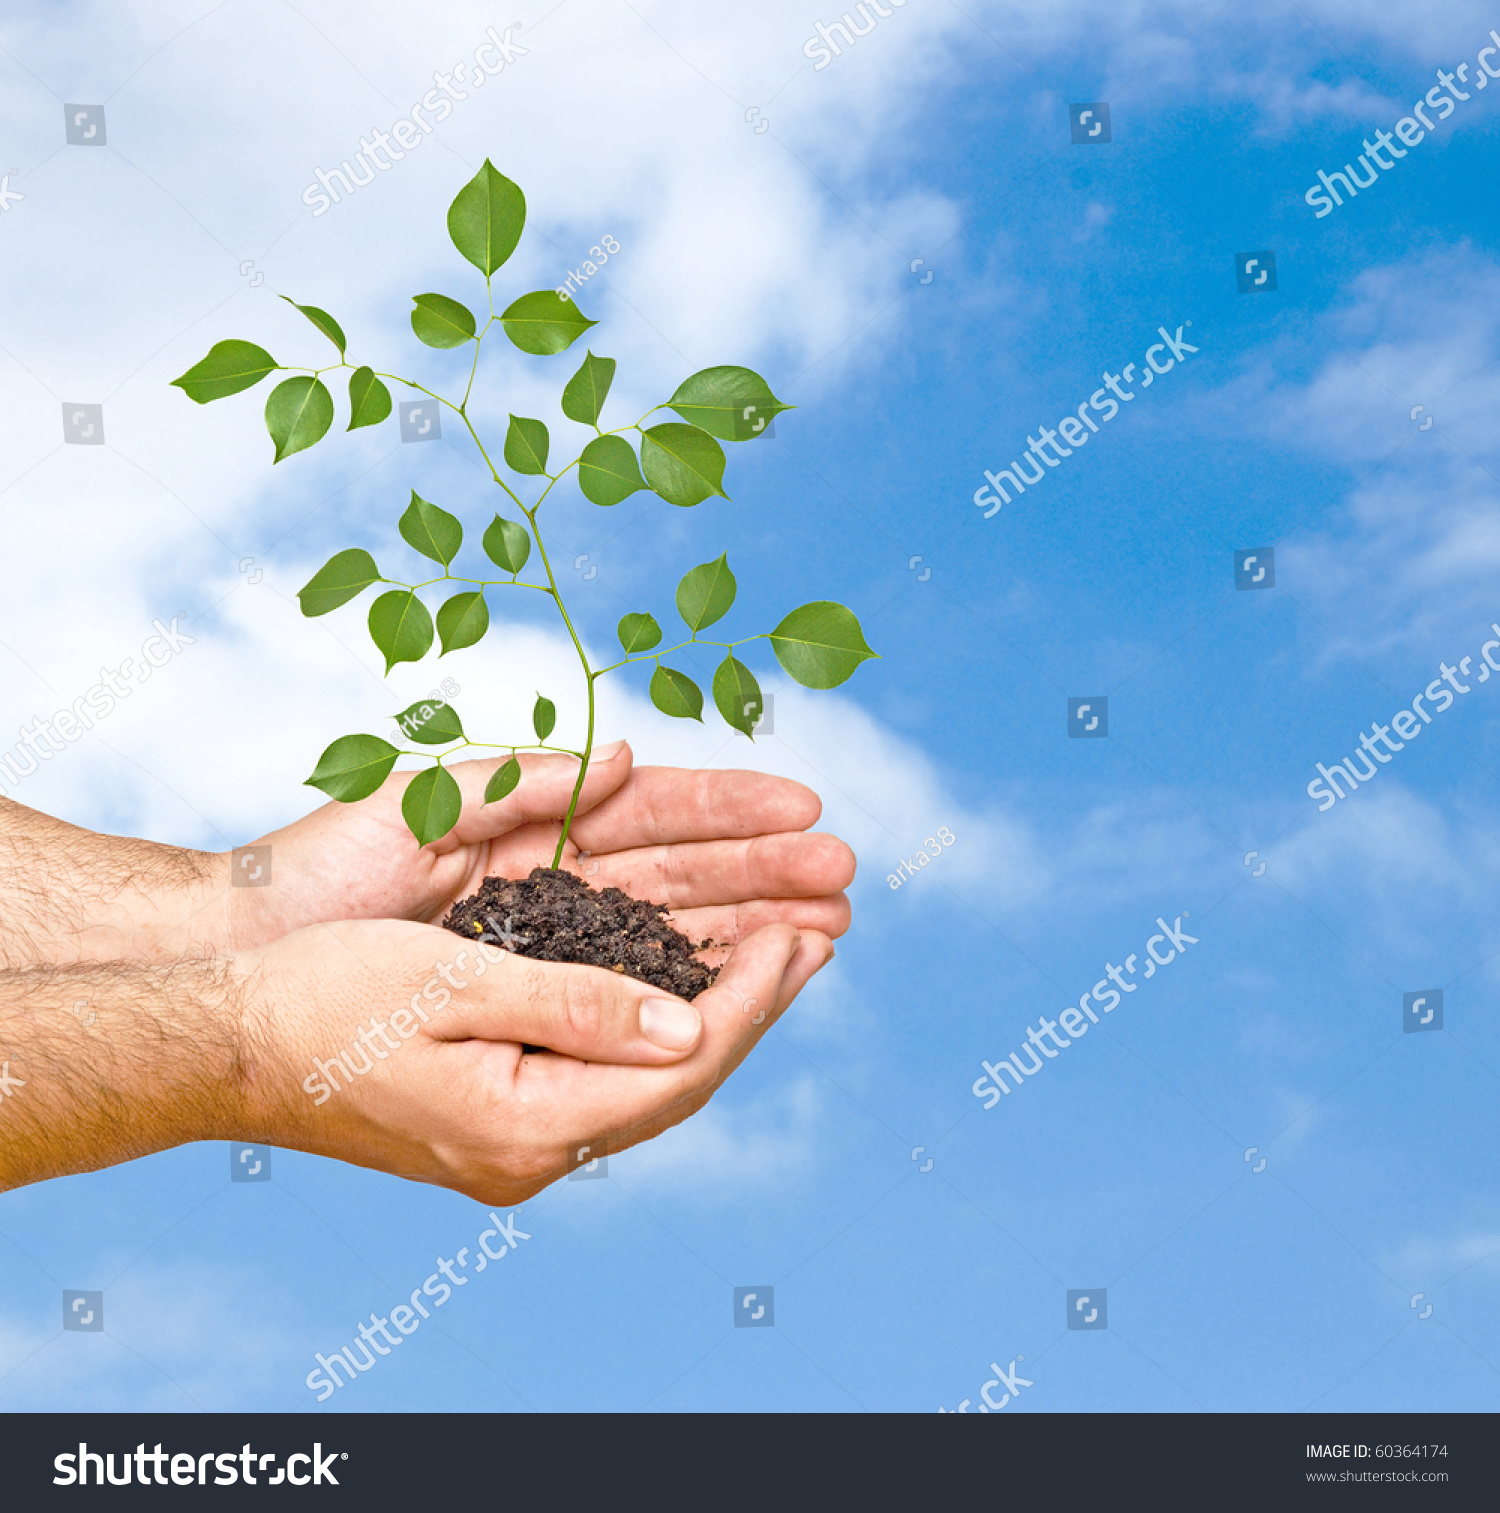 Tree seedling hands symbol nature protection stock photo 60364174 tree seedling in hands as a symbol of nature protection biocorpaavc